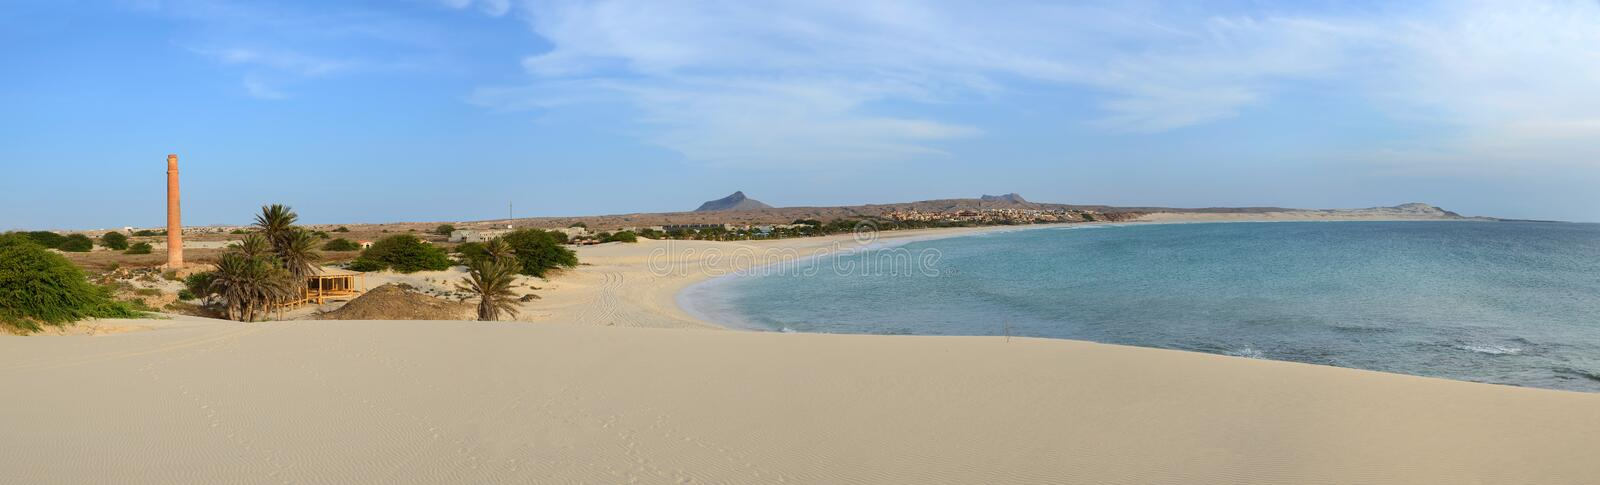 Panorama of Praia de Chaves Beach, Boa Vista, Cape Verde. Panorama of Praia de Chaves Beach in Boa Vista, Capo Verde, at Sunset, with the tall chimney from an royalty free stock photo